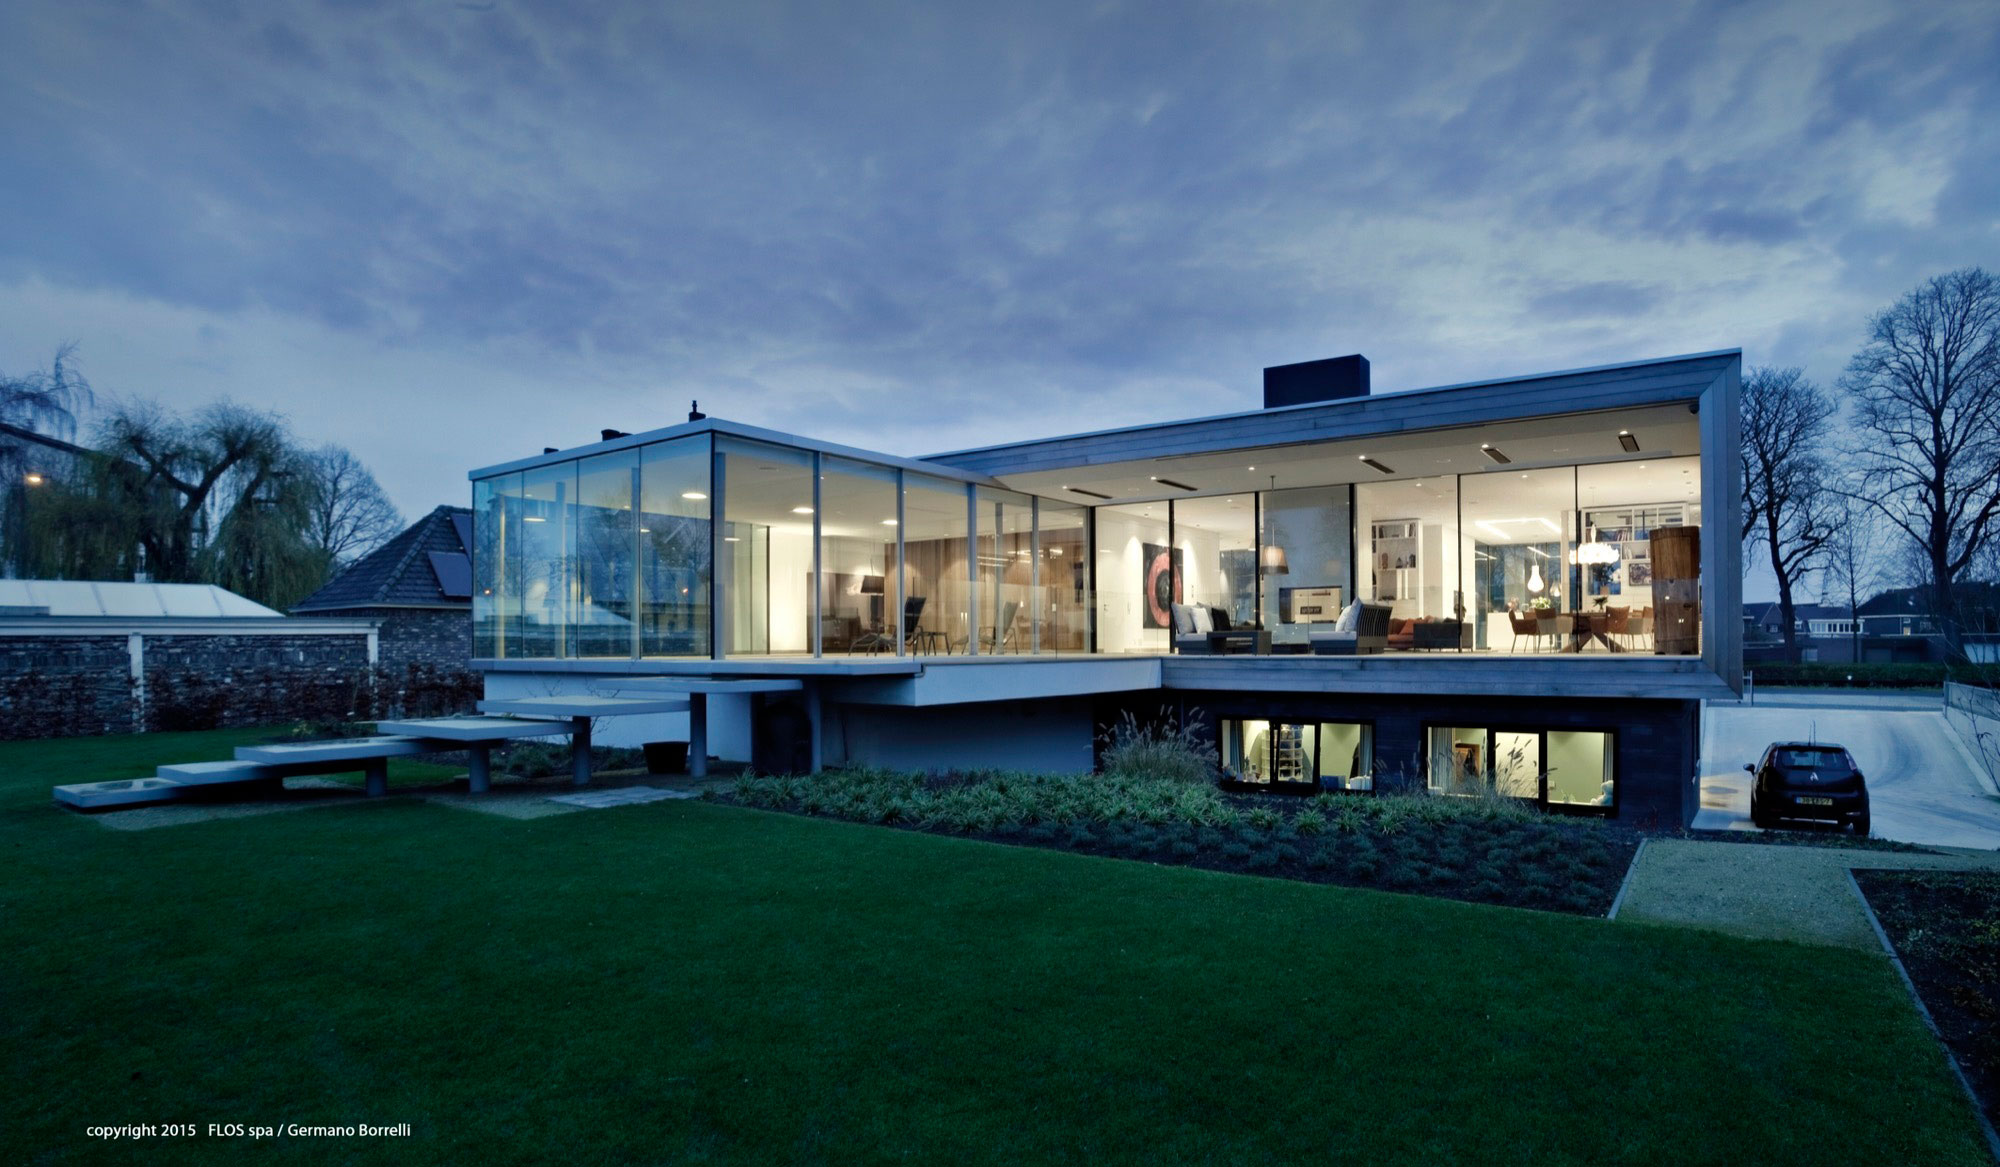 Liag Architects Design a Contemporary House in Weert, The Netherlands